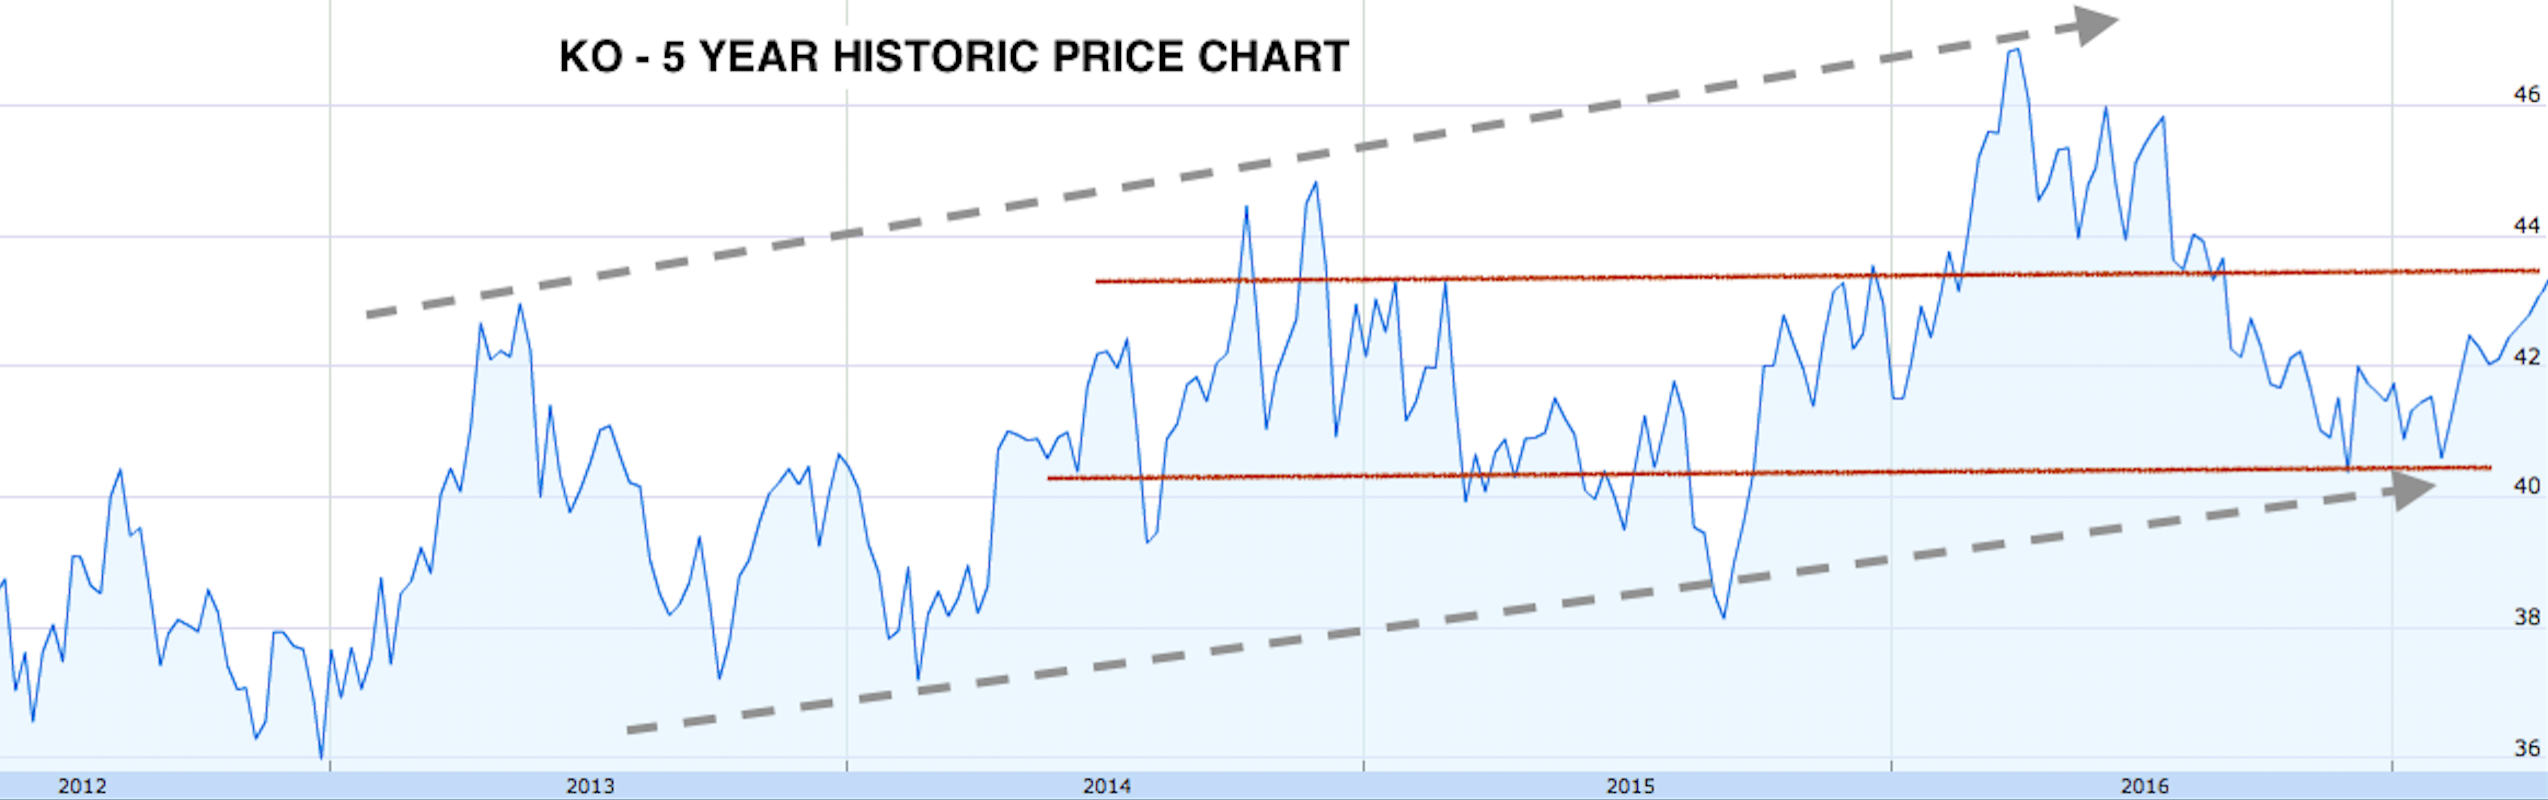 KO - Five Year Historic Price Chart